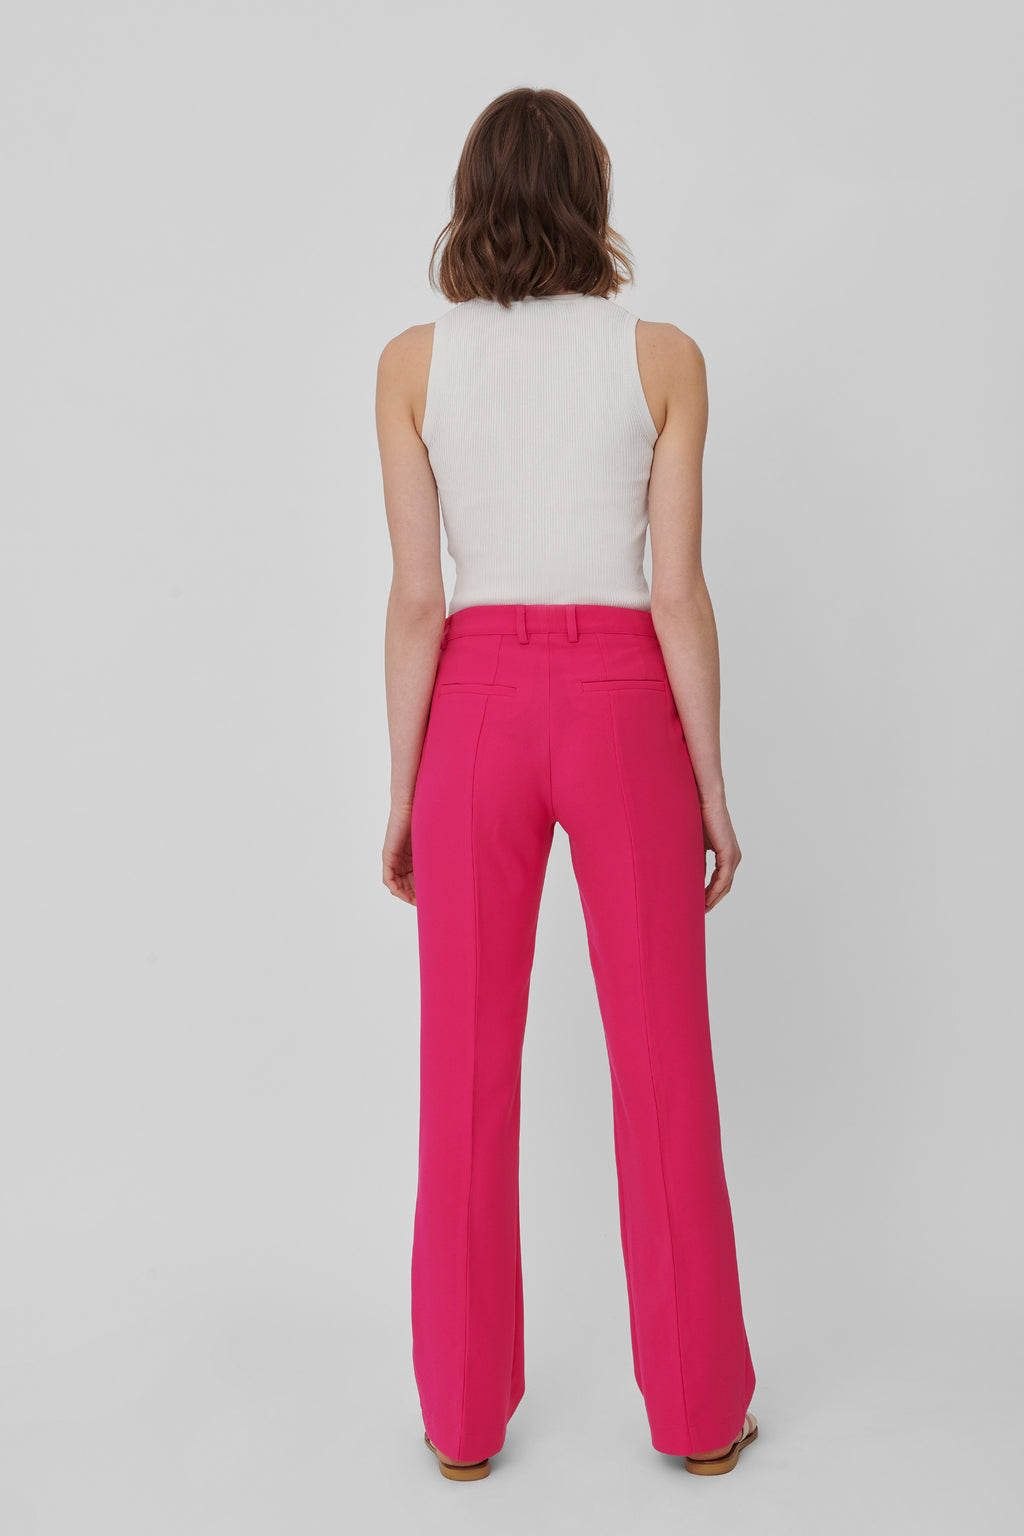 The Raspberry Crepe Lover 2.0 Pants